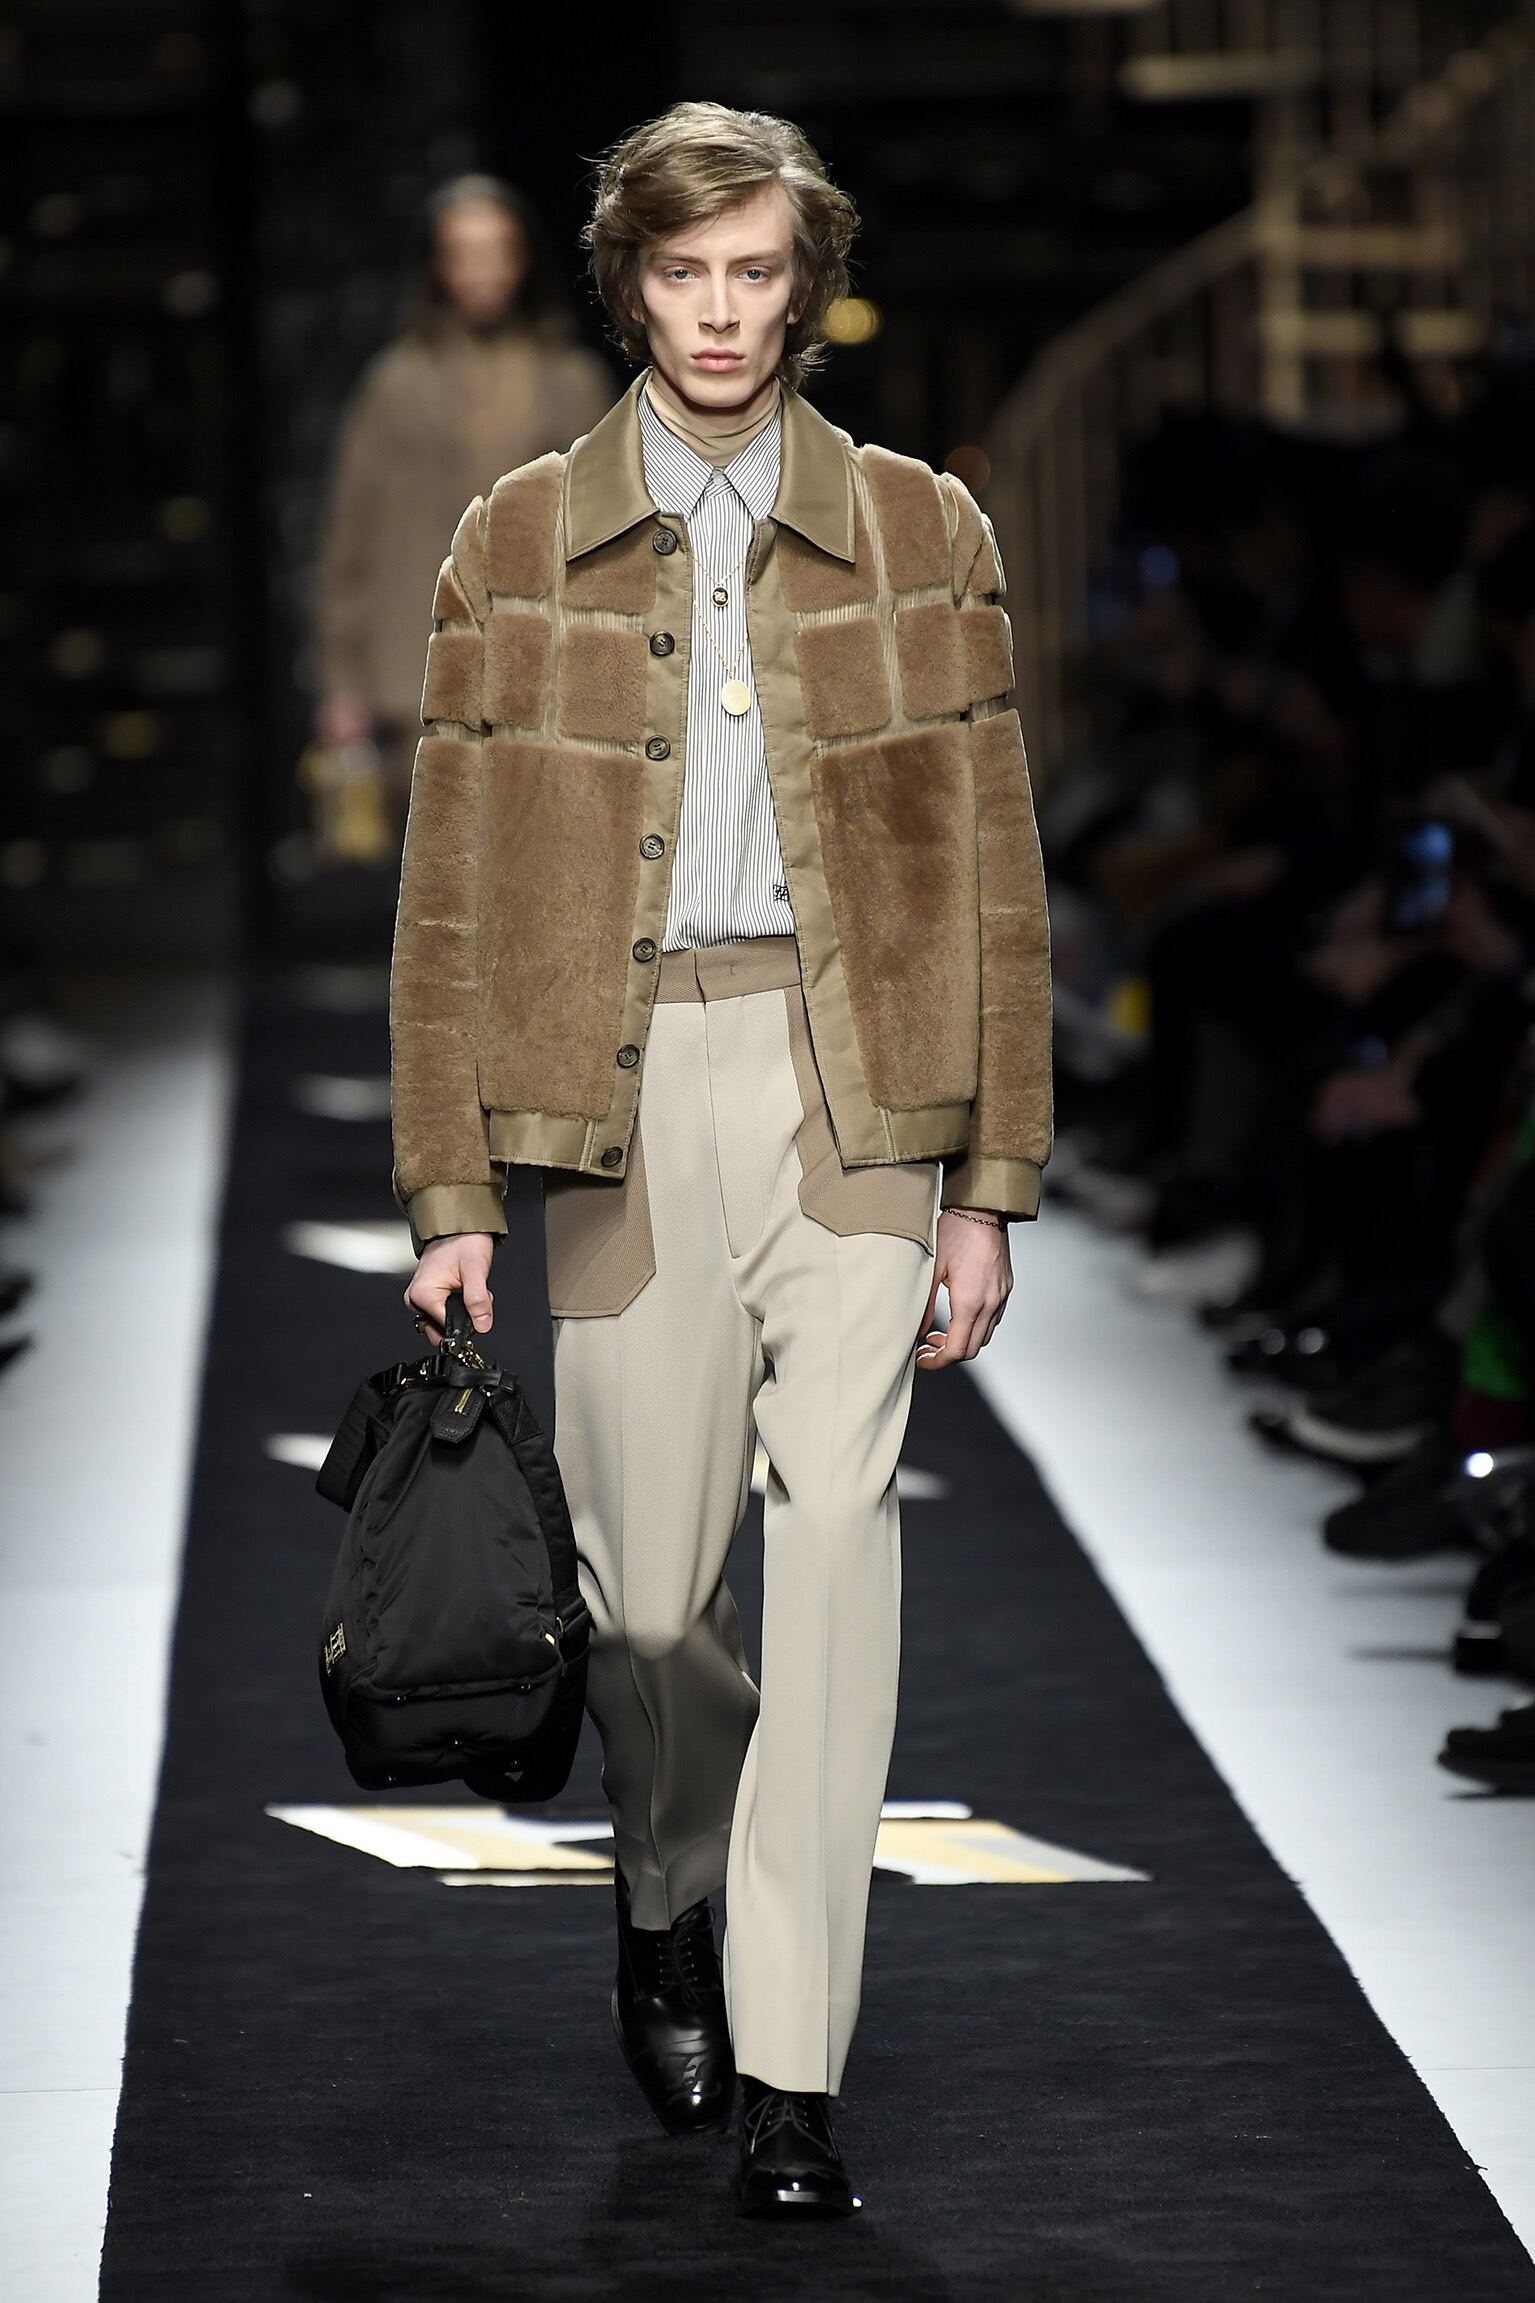 FW 2019-20 Fendi Fashion Show